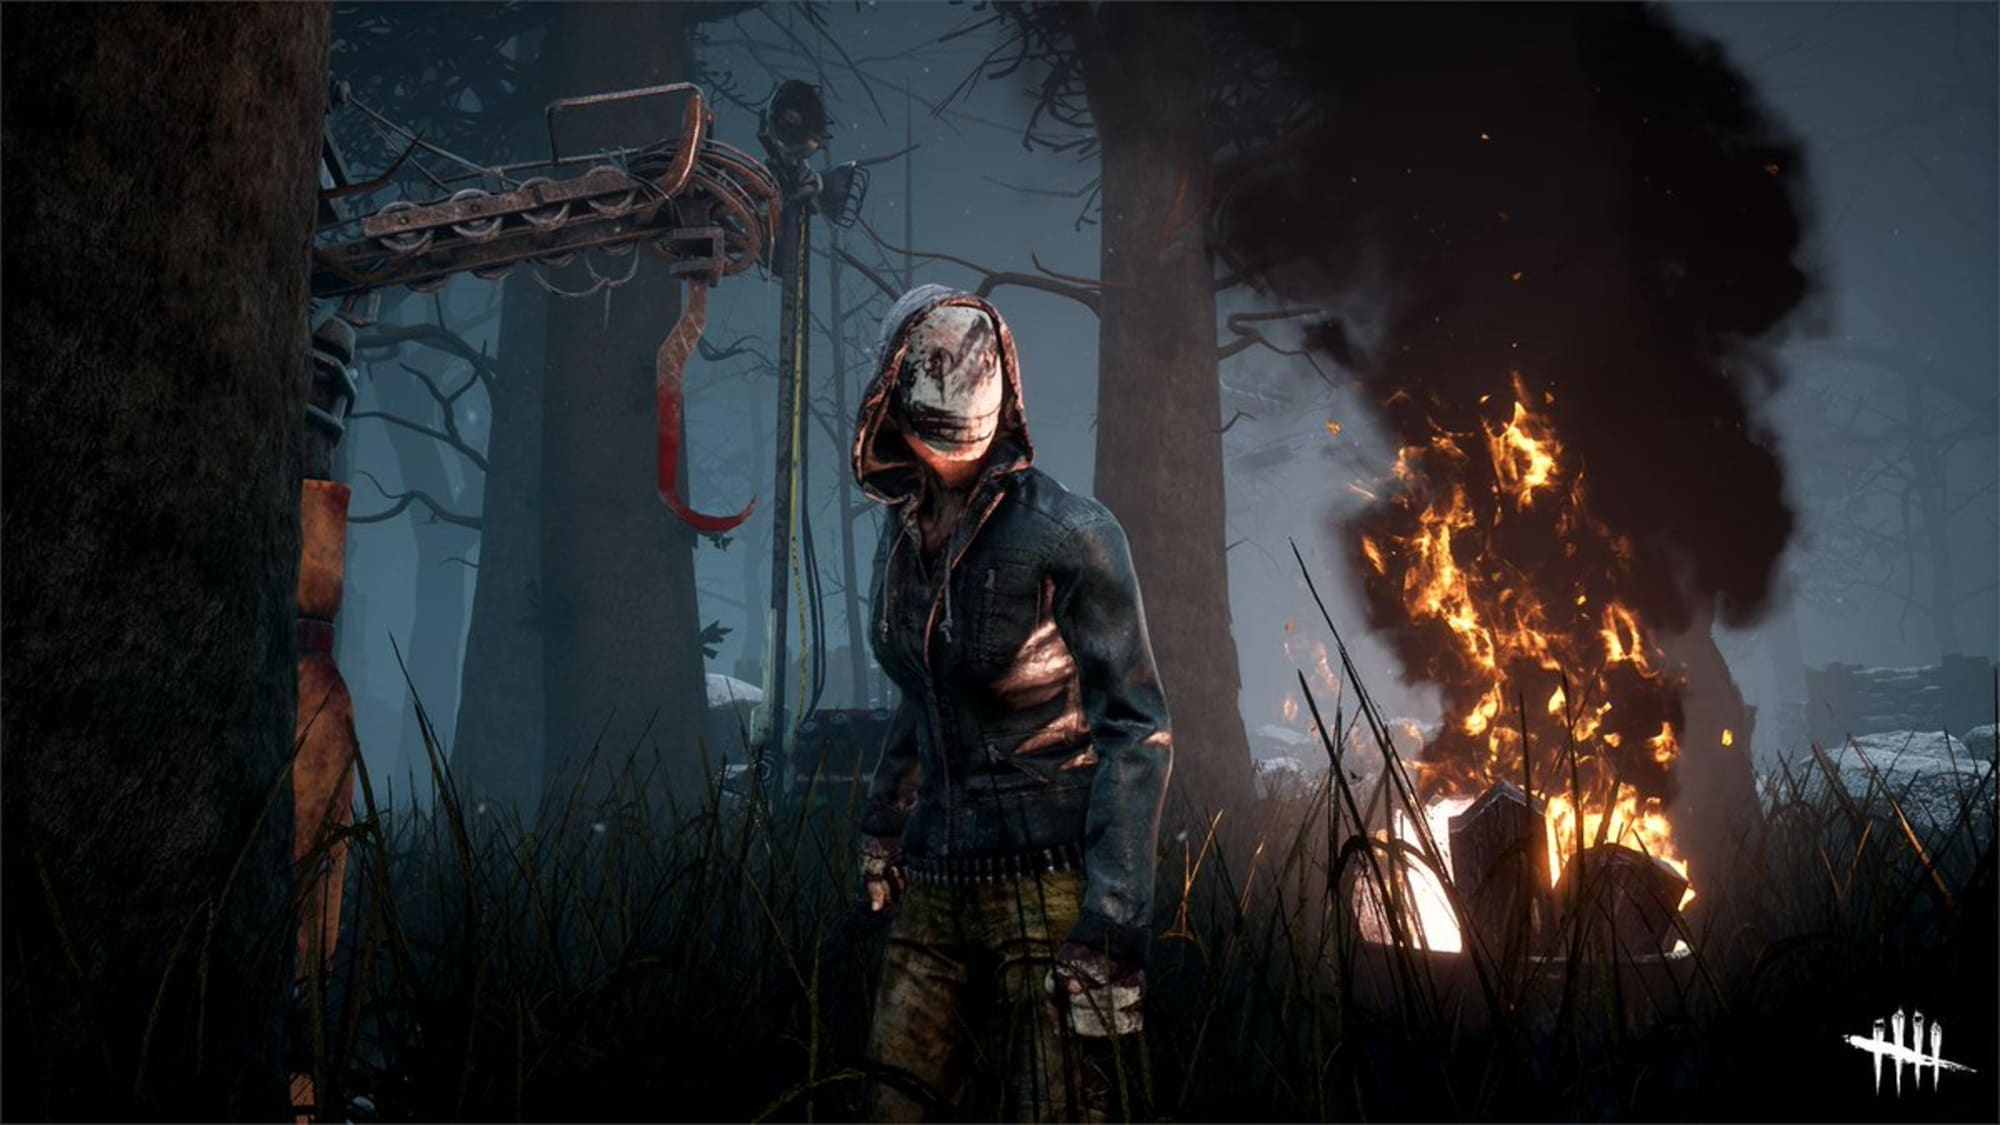 Dead By Daylight Chains Of Hate Brings The Deathslinger